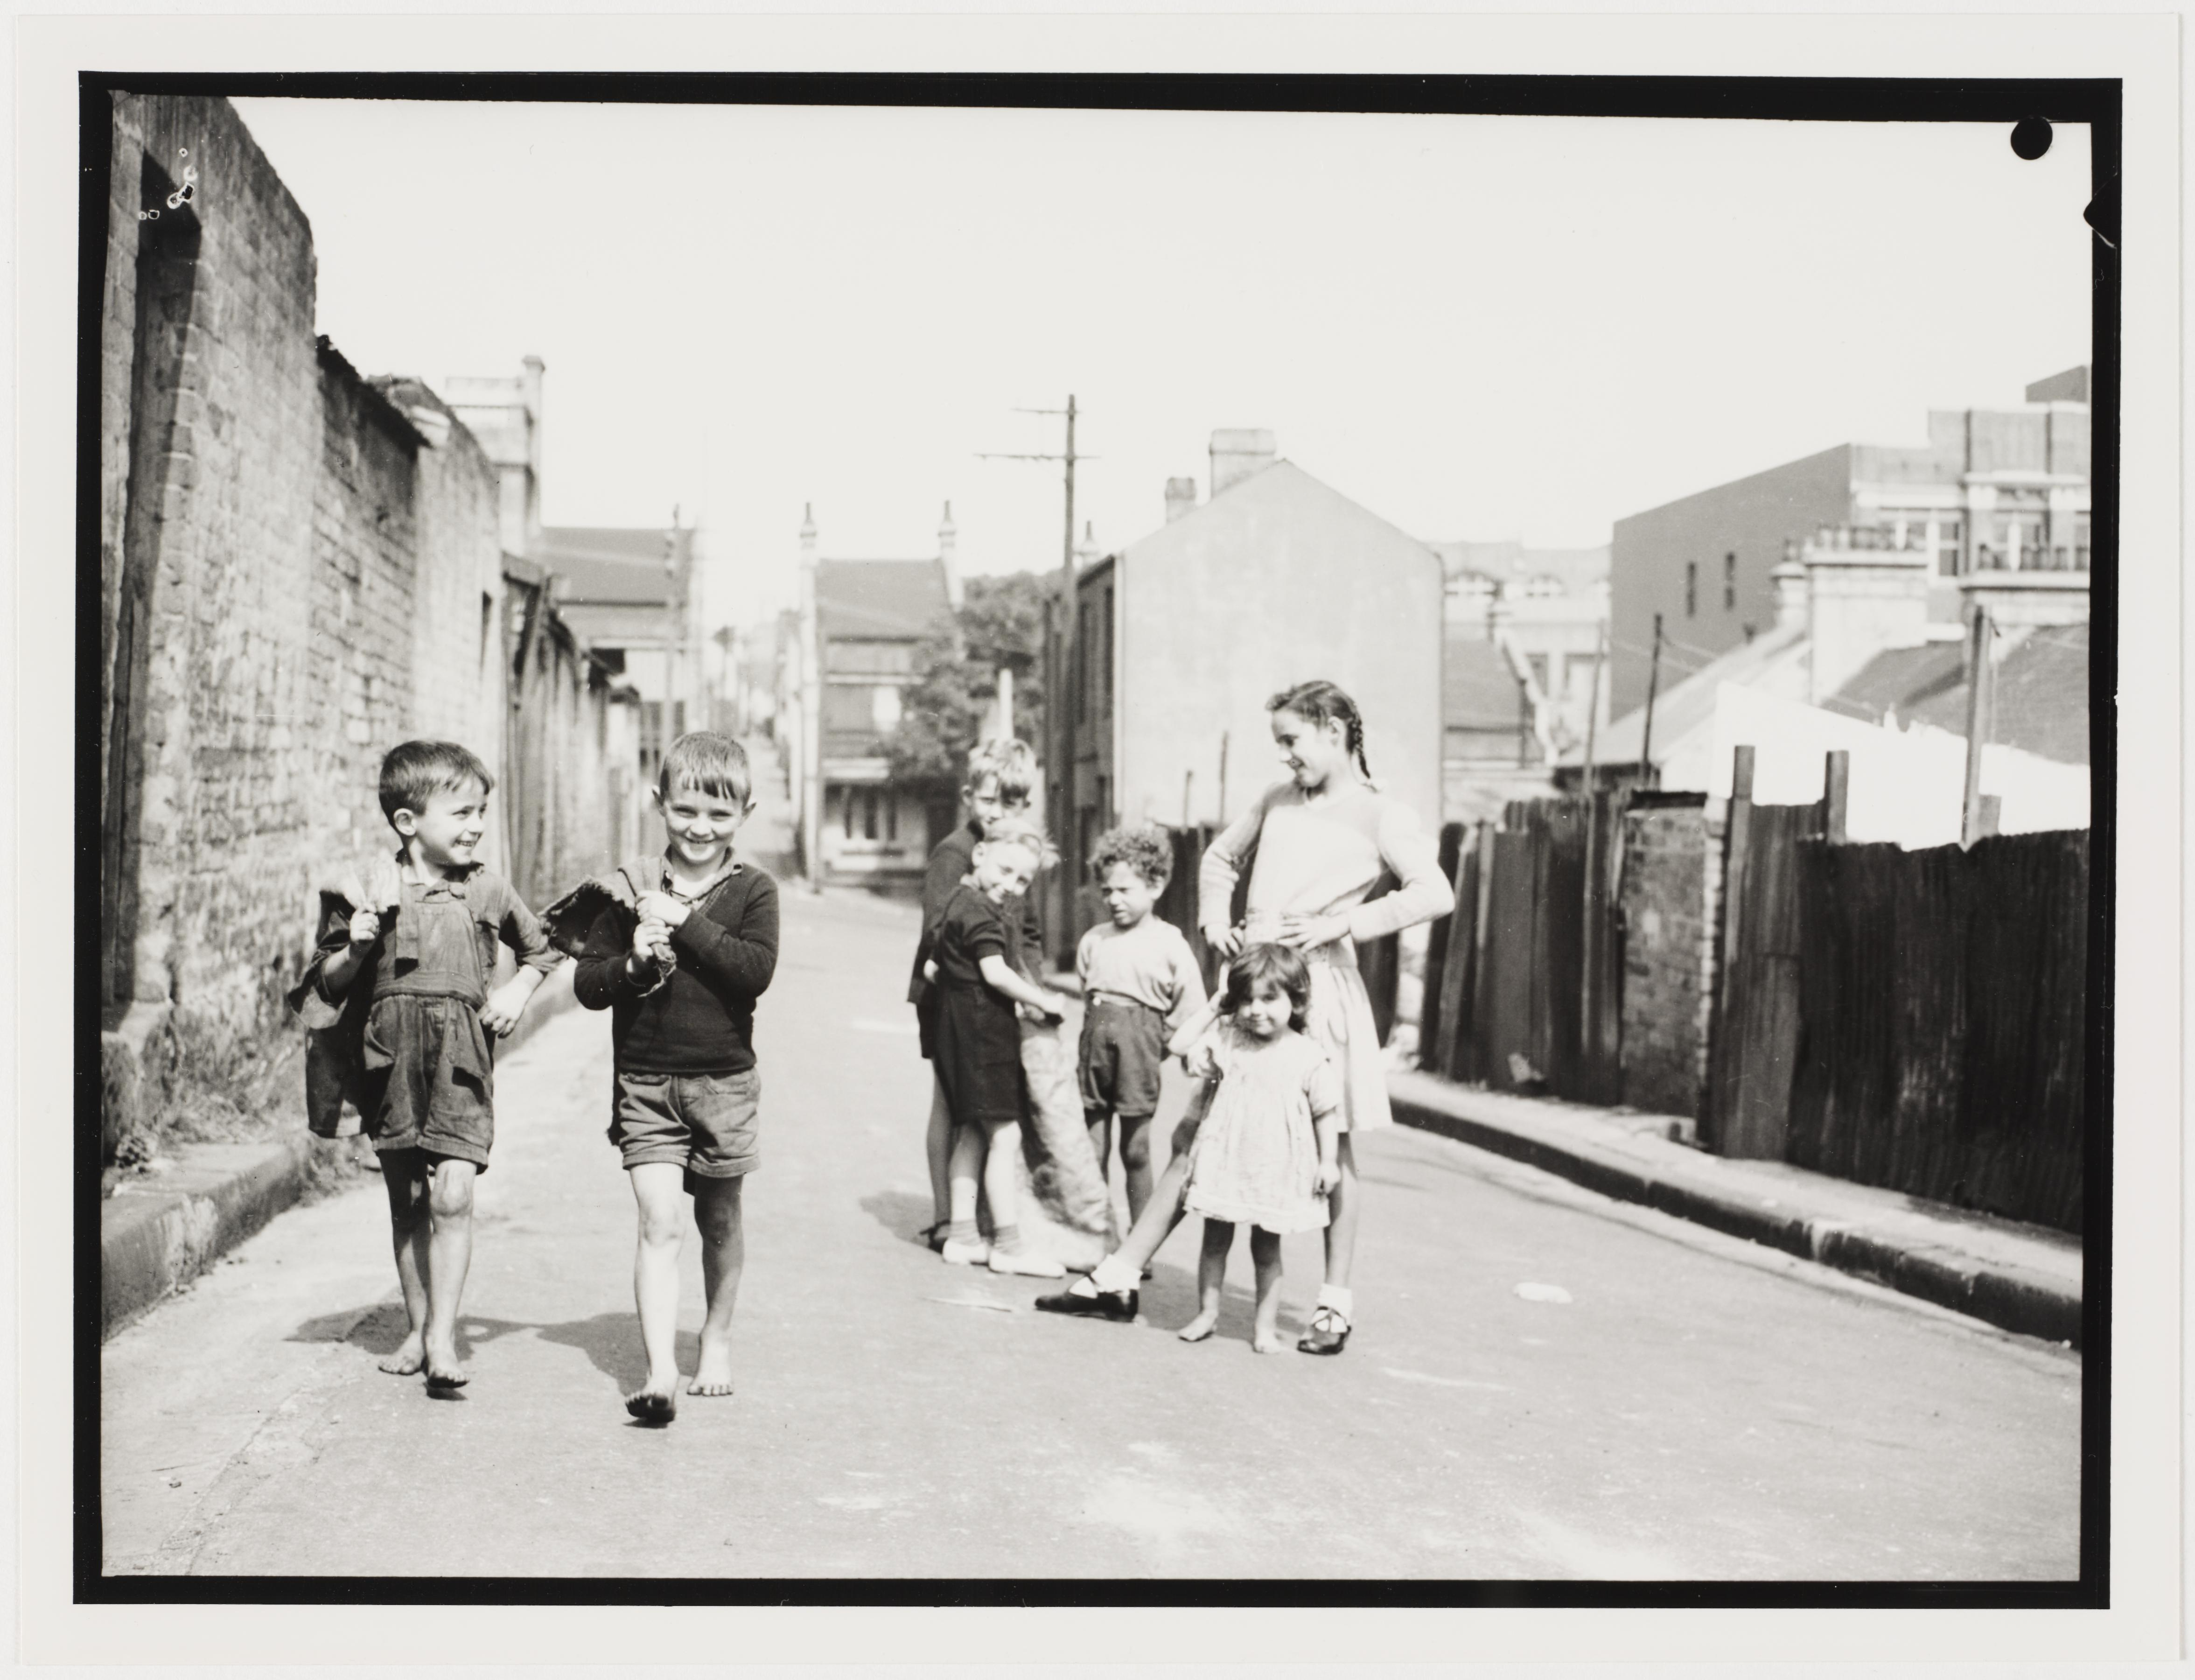 Children in Sydney slums, mainly Surry Hills, Woolloomooloo, Redfern, 1949 by Ted Hood